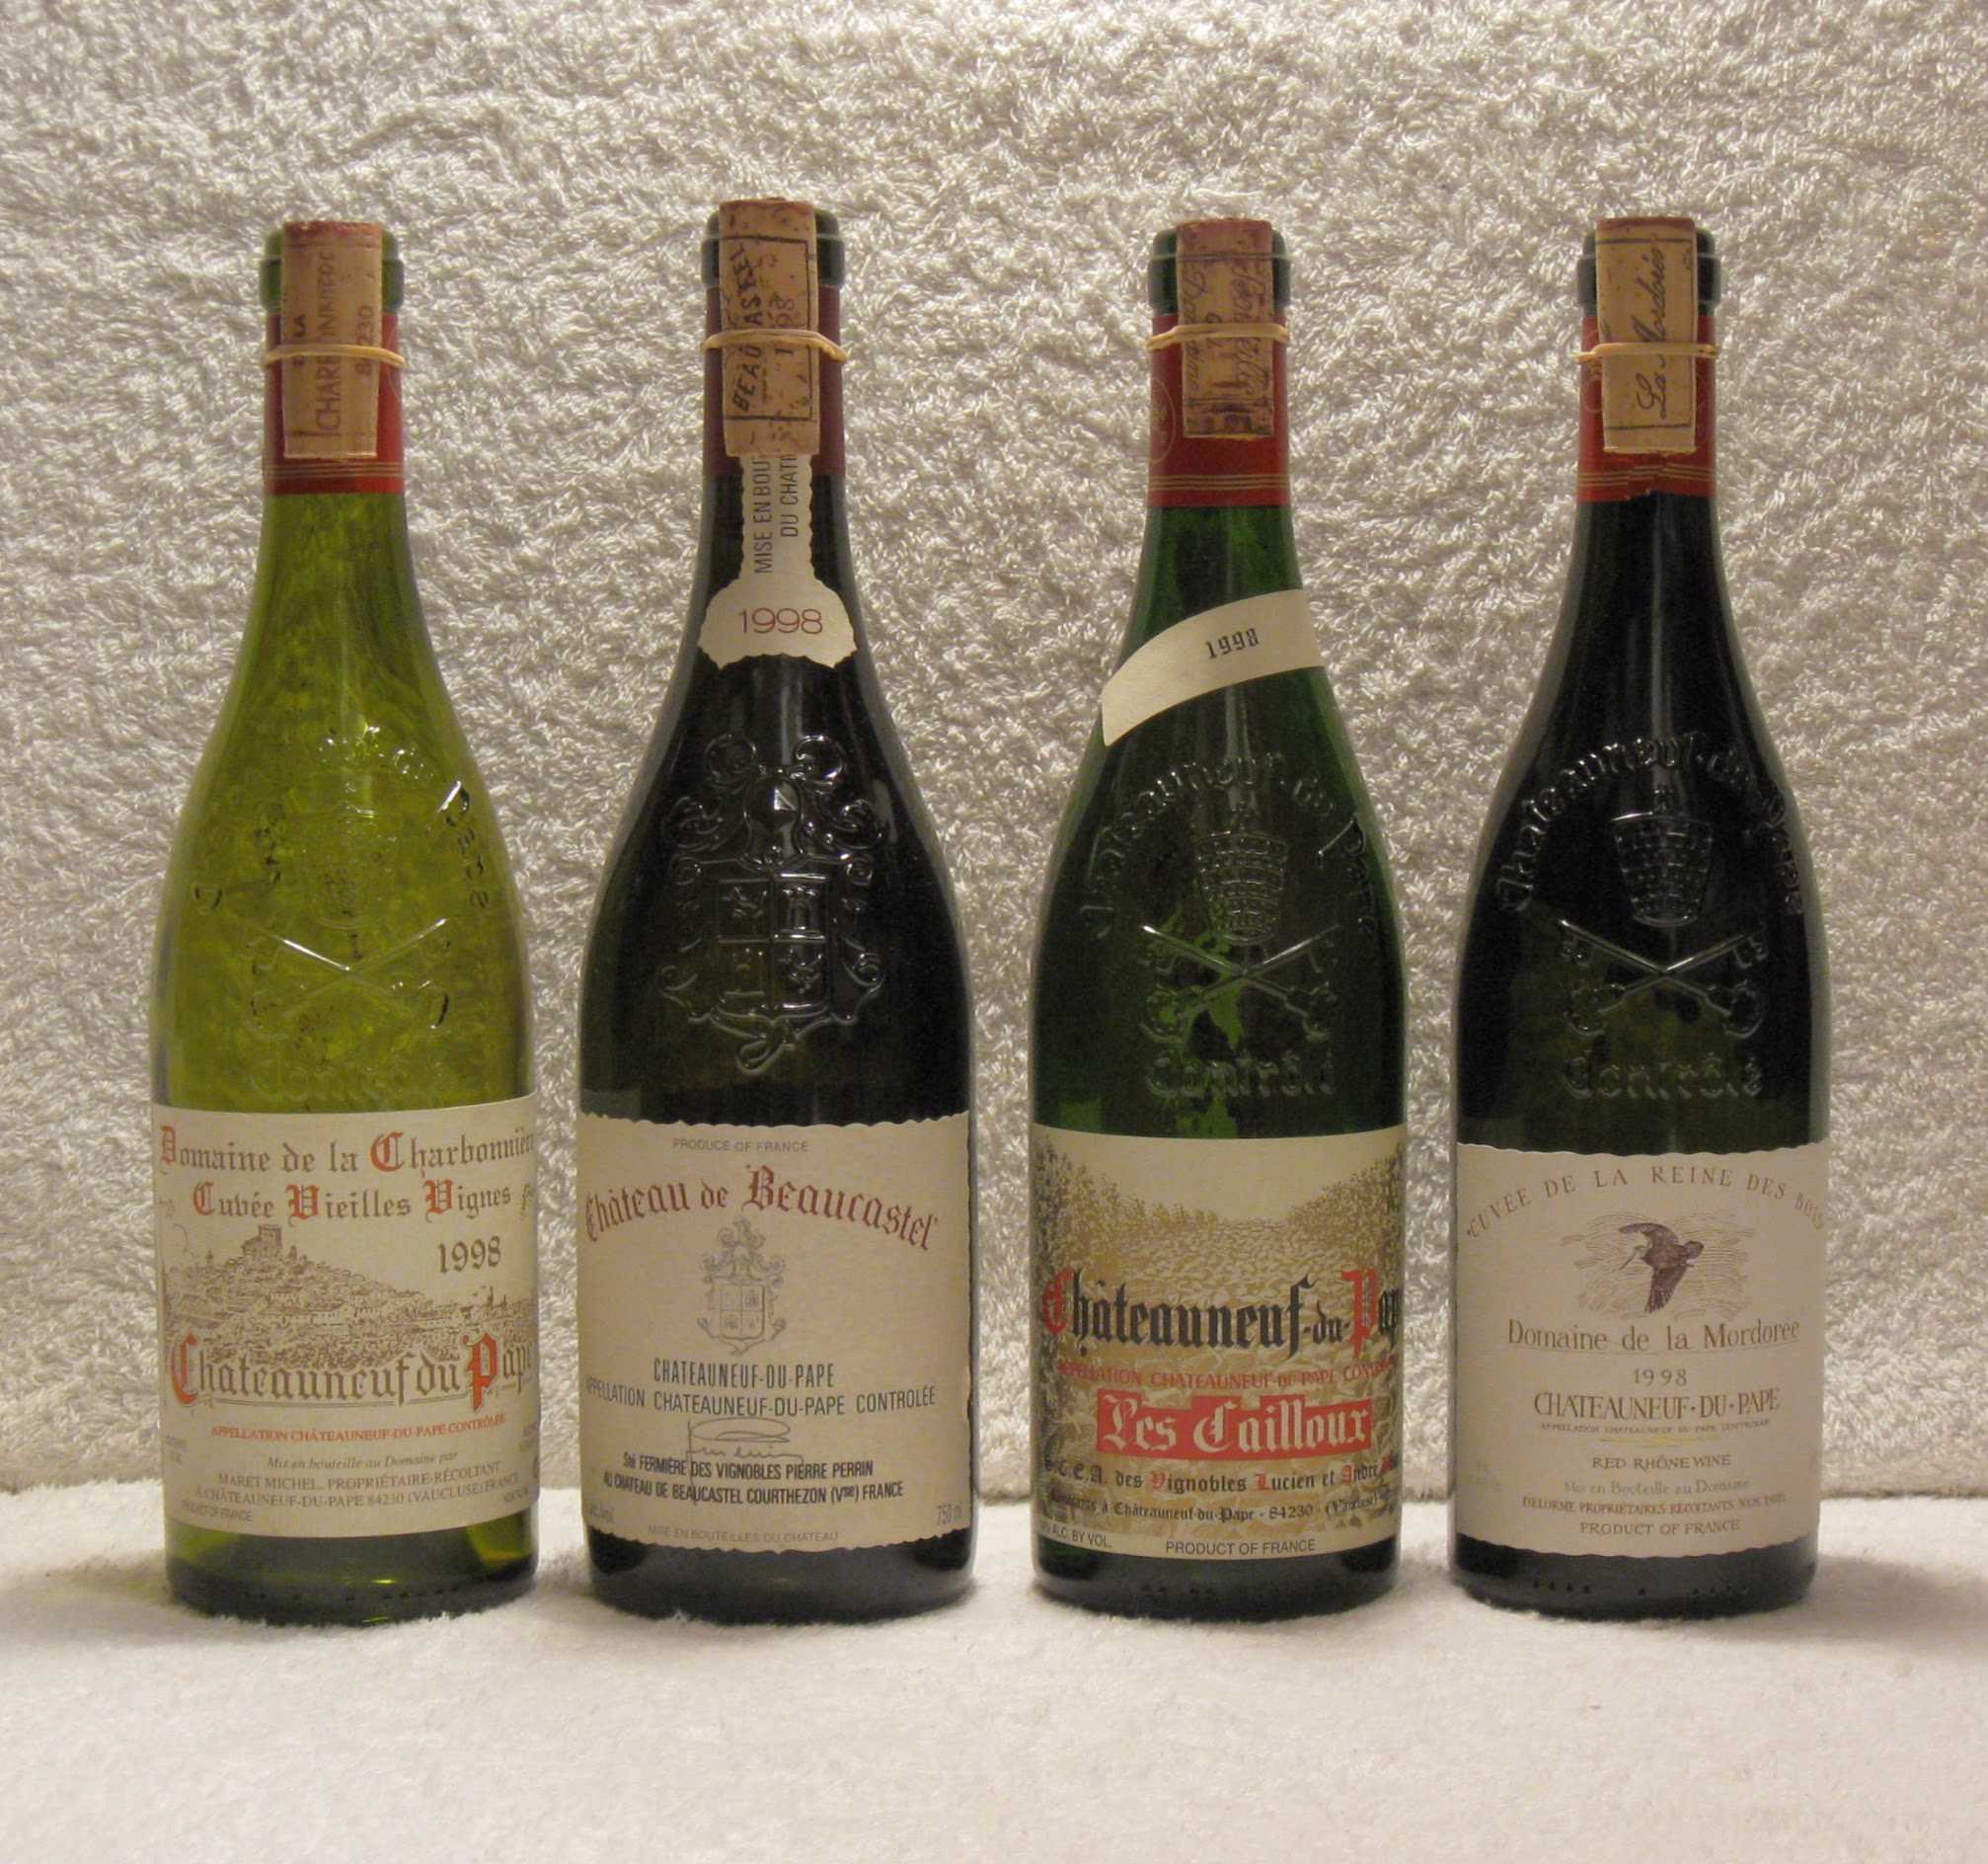 7d351e3f5 ... Southern Rhone blends,  and make the wines magical with food,  but many  wine people now like to affect the view that traces of brett are  intolerable.